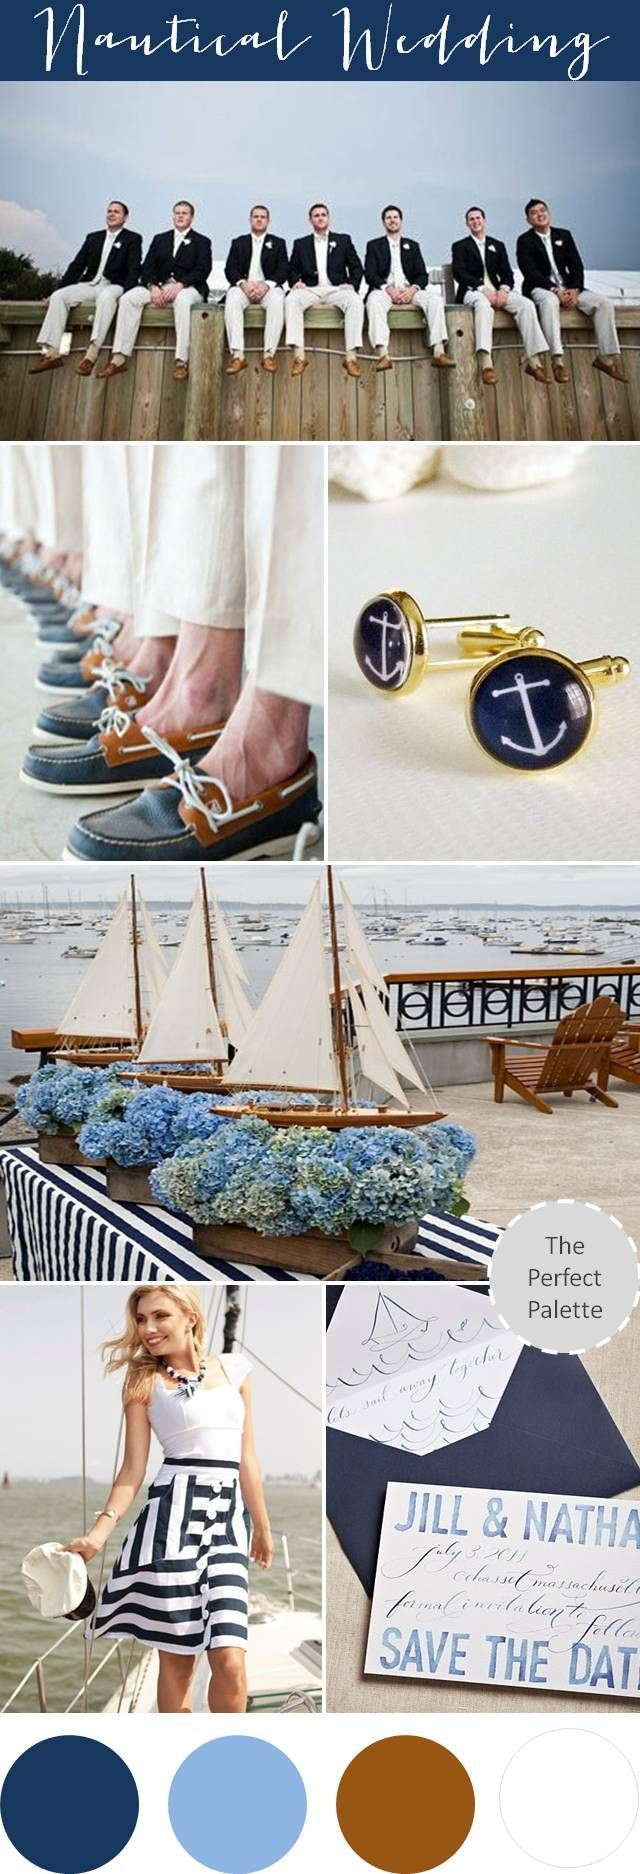 Who says the men can't be stylish during the wedding! We love the boat shoes and anchor cuff links! #Nauticalwedding #Nauticaltheme #Nauticalmenswear #Groomsmen #Boatshoes #Cufflinks